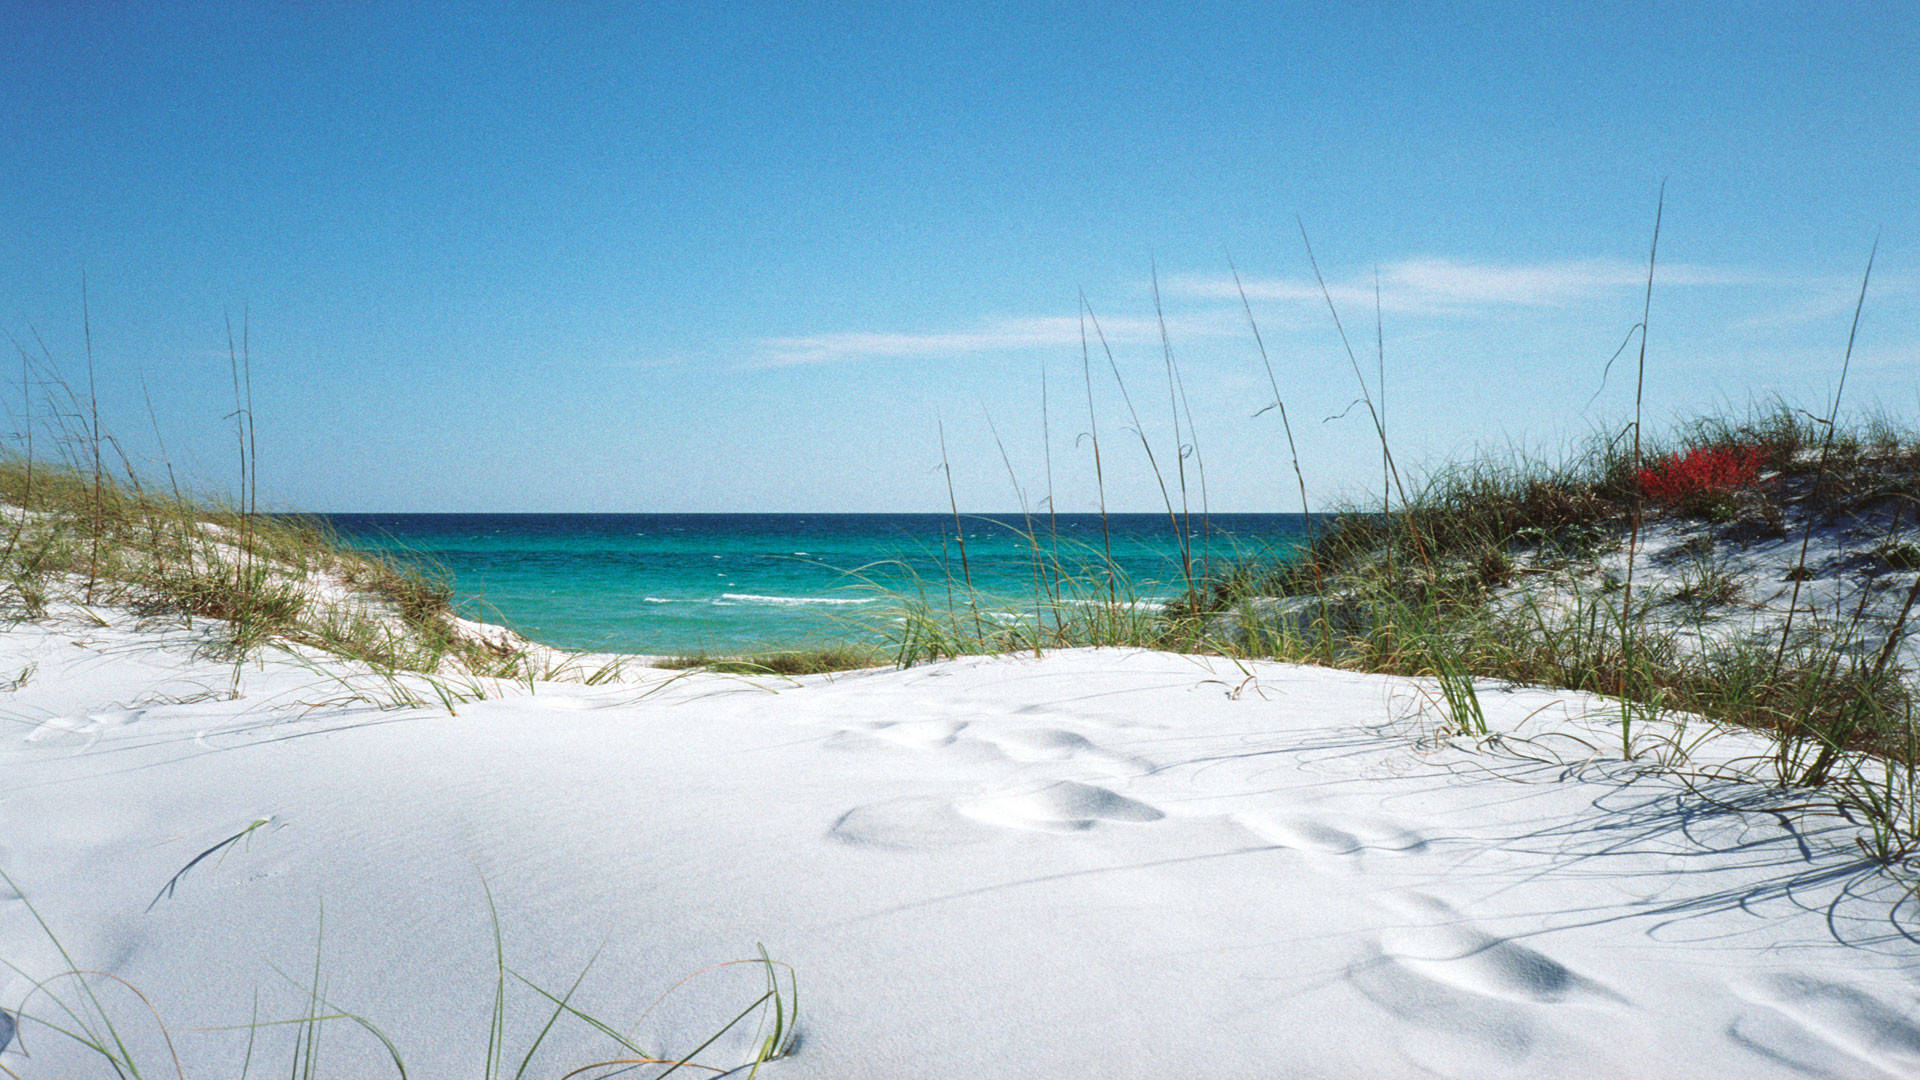 pictures, beach, beaches, florida, wallpaper, scenic, images .